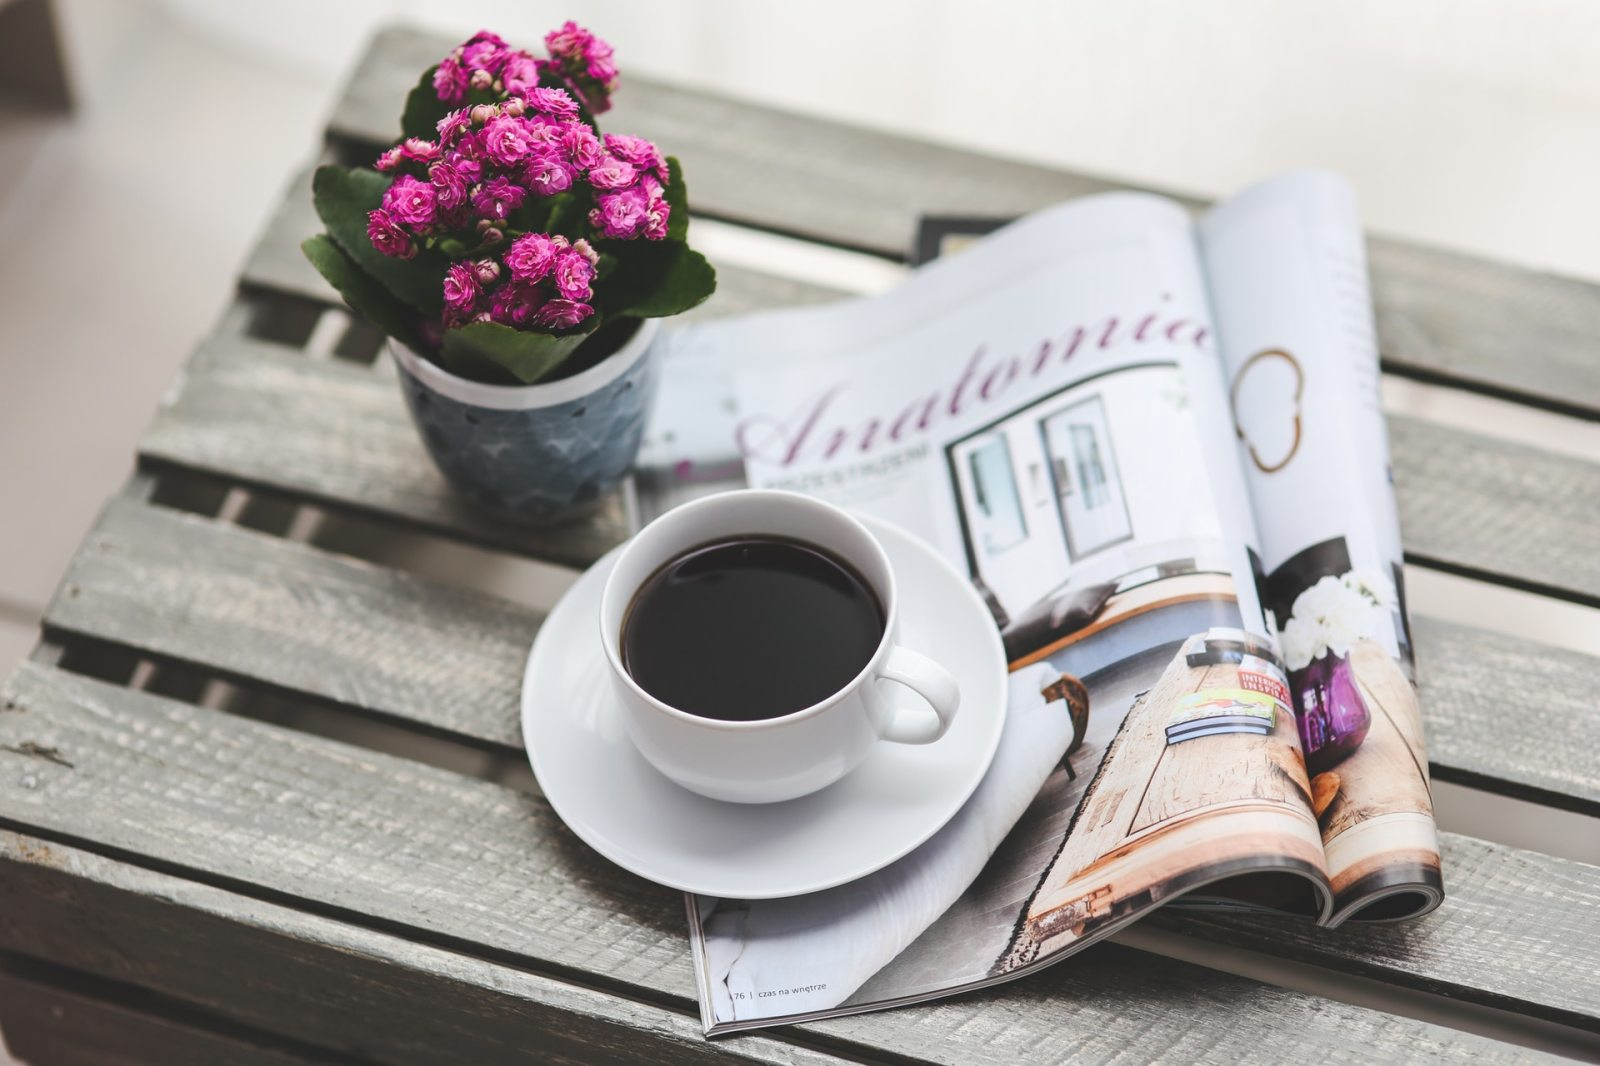 magazine on table with cup of coffee